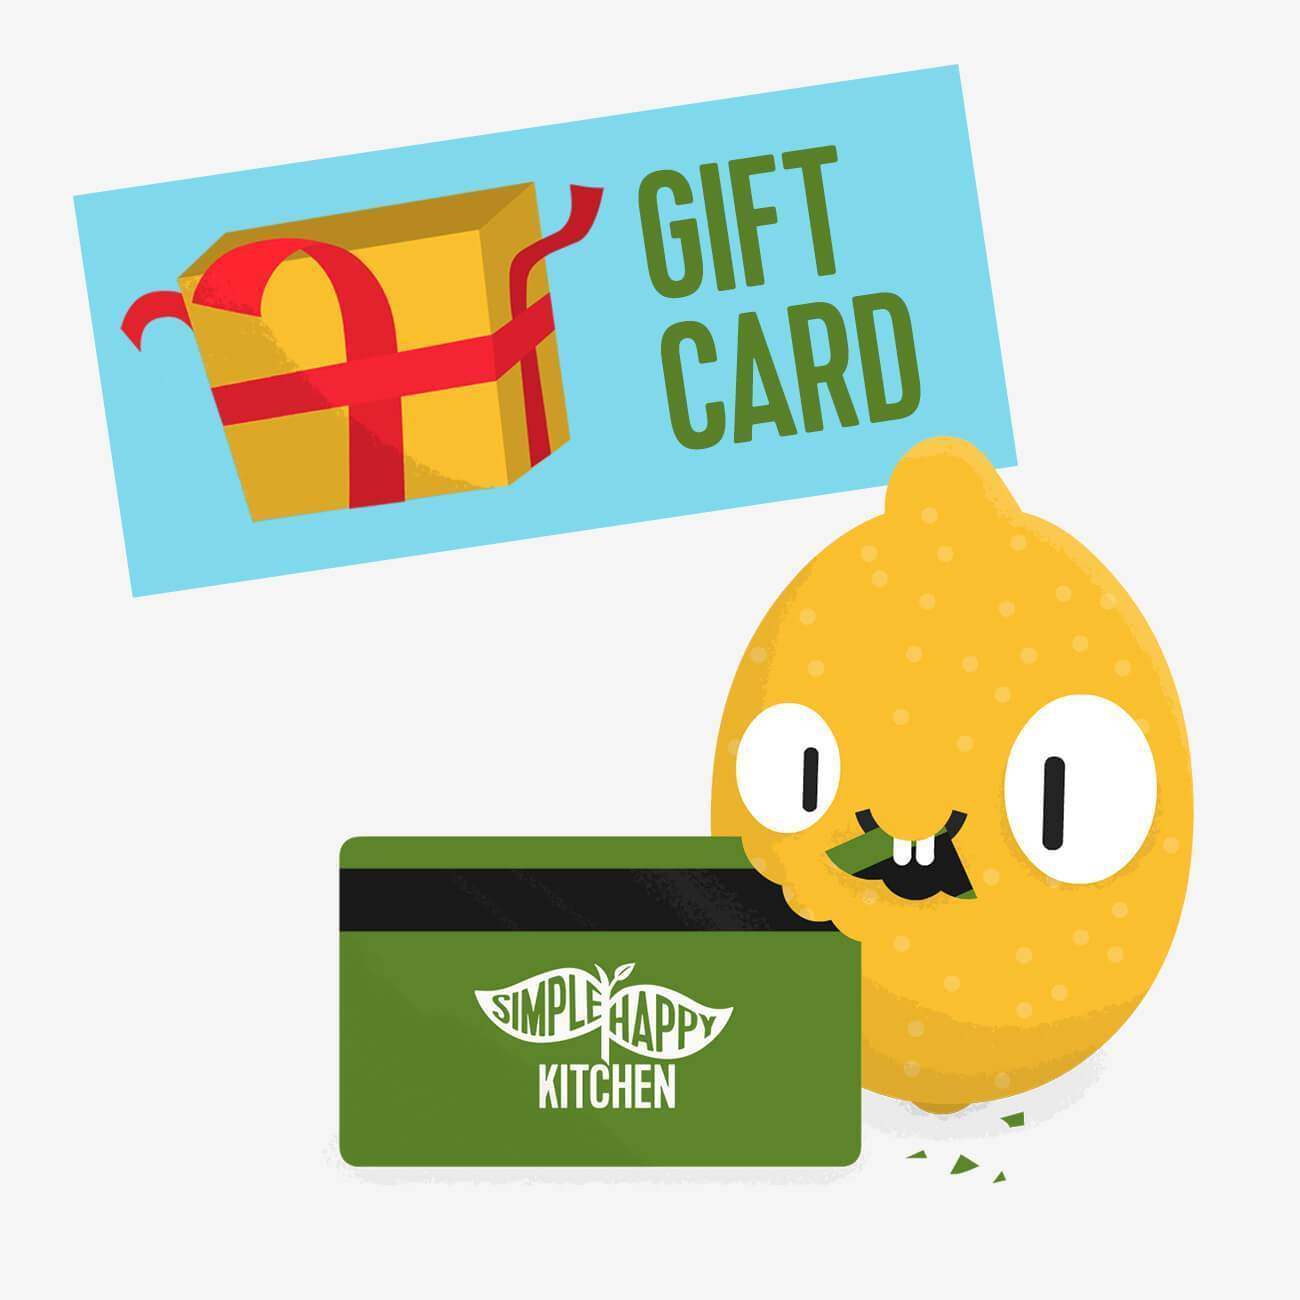 Gift Card - Simple Happy Gift Card